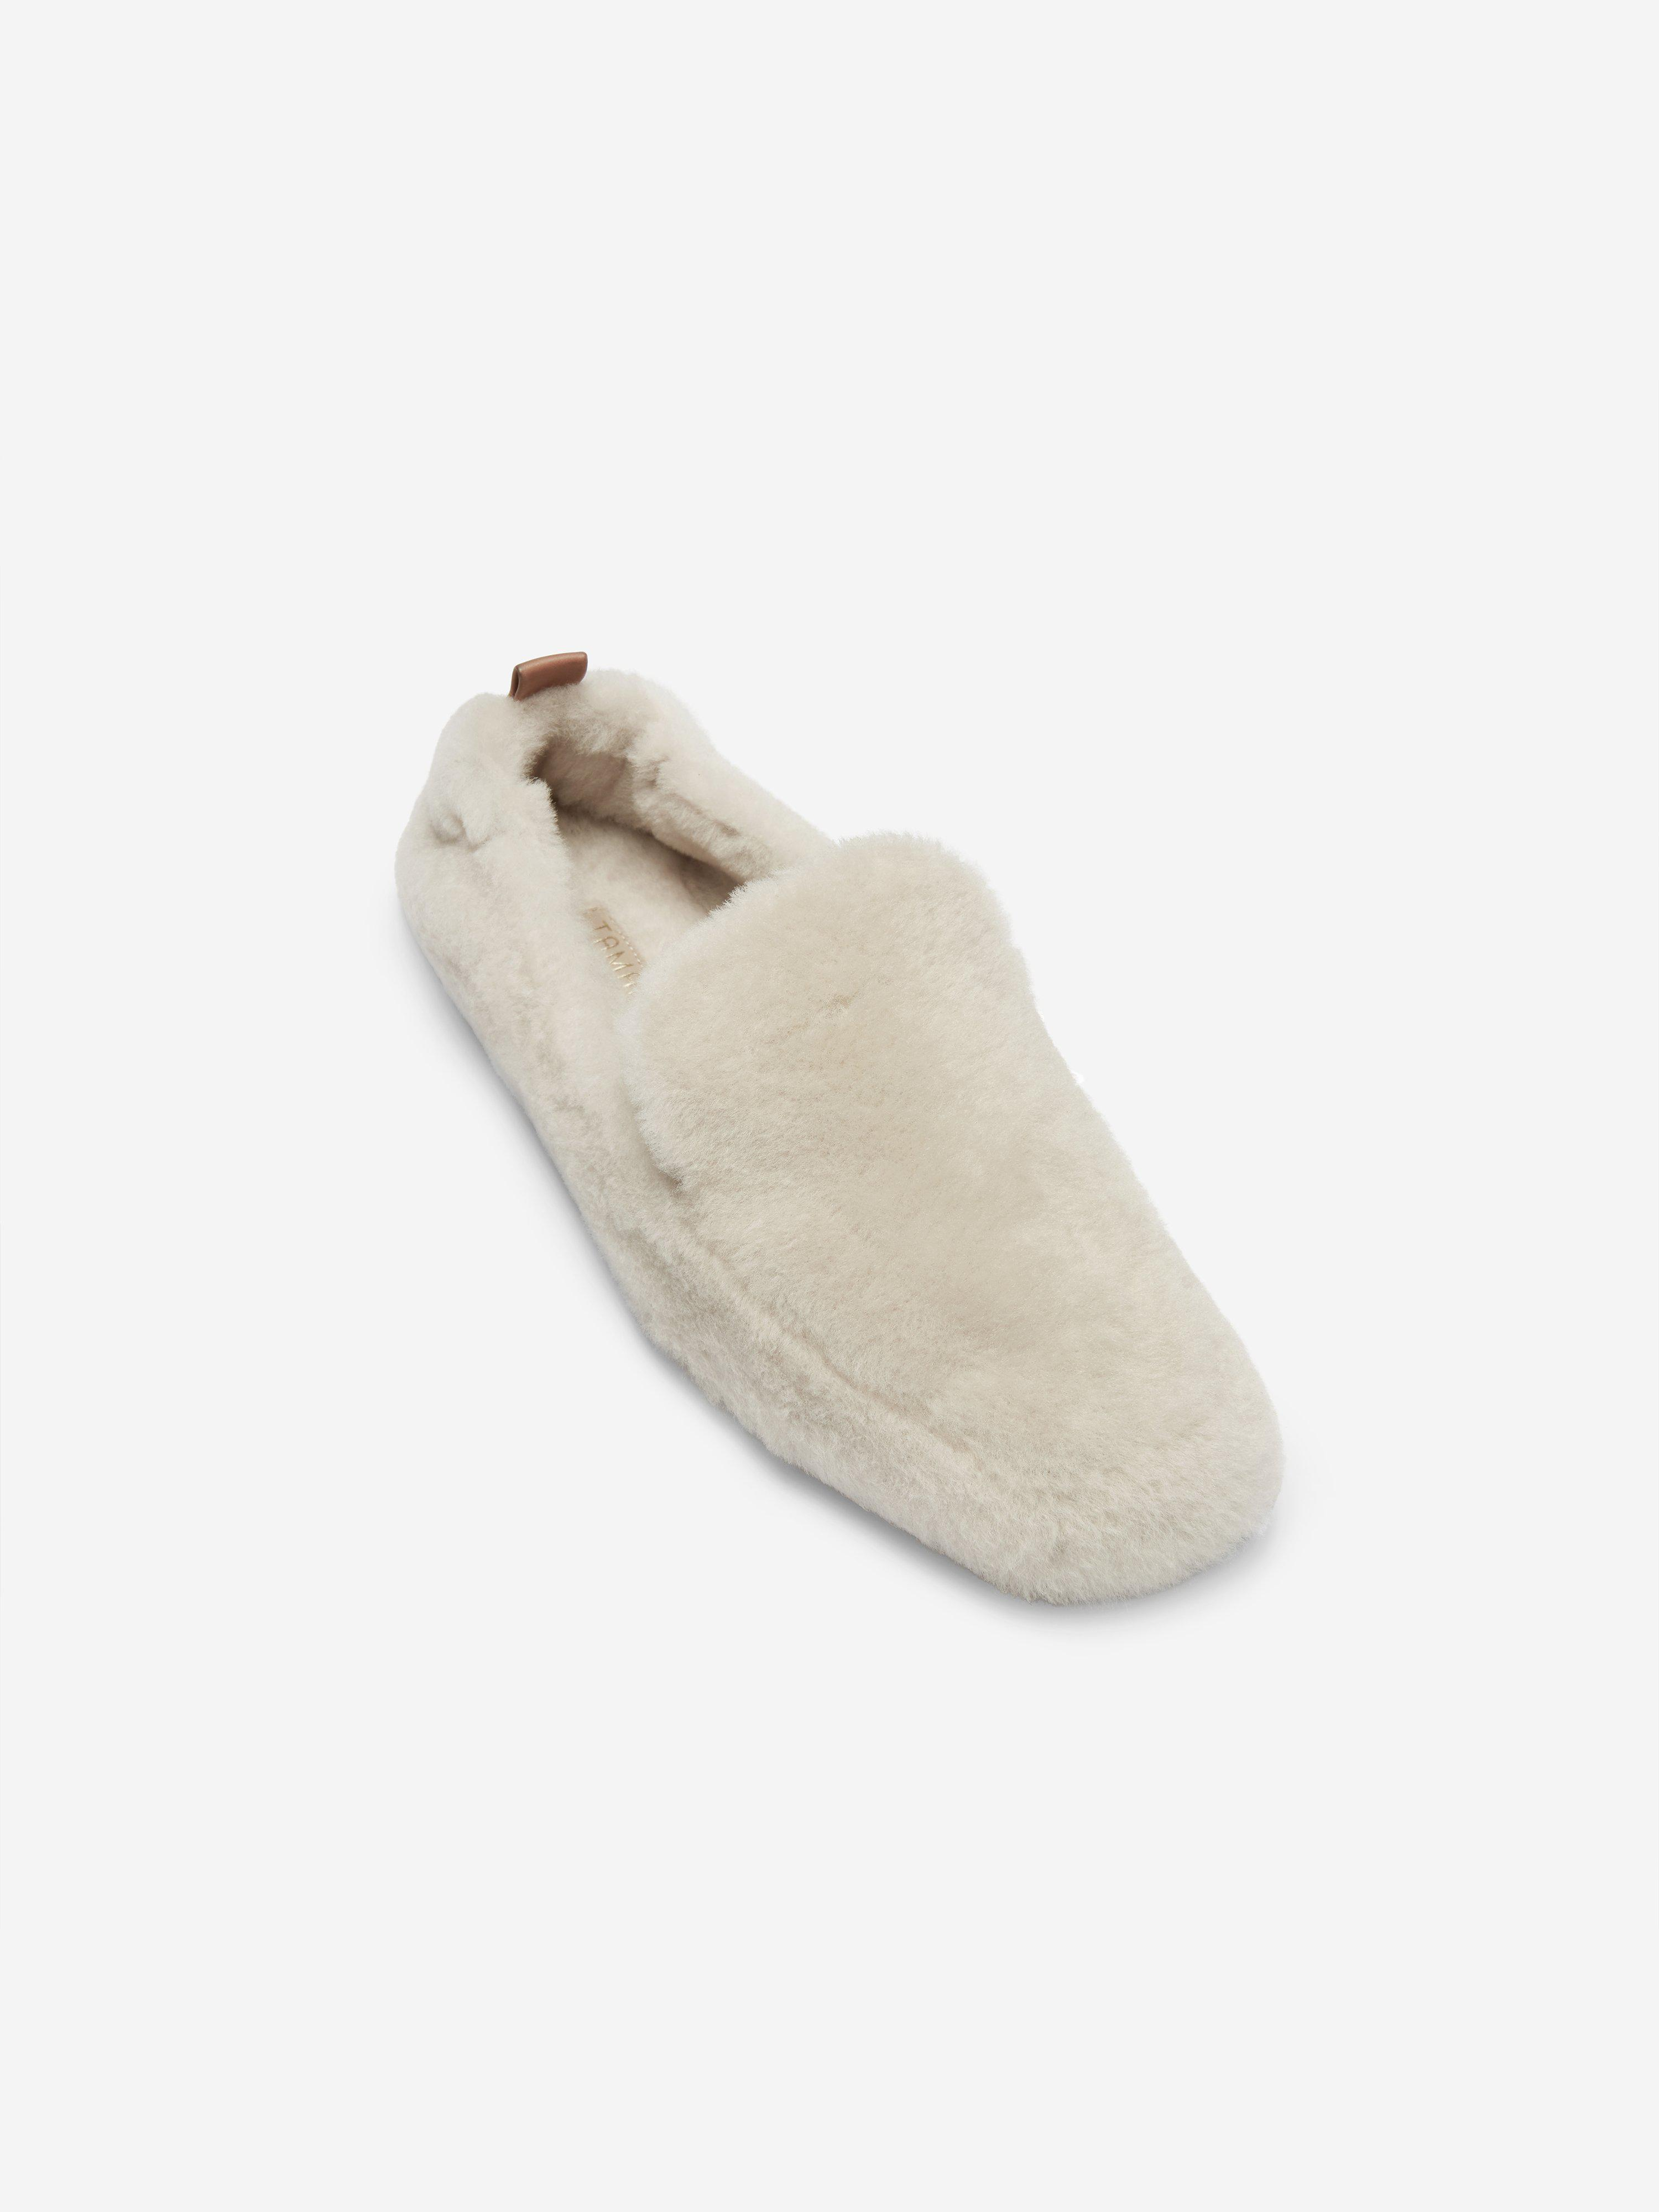 Stow - Shearling 1